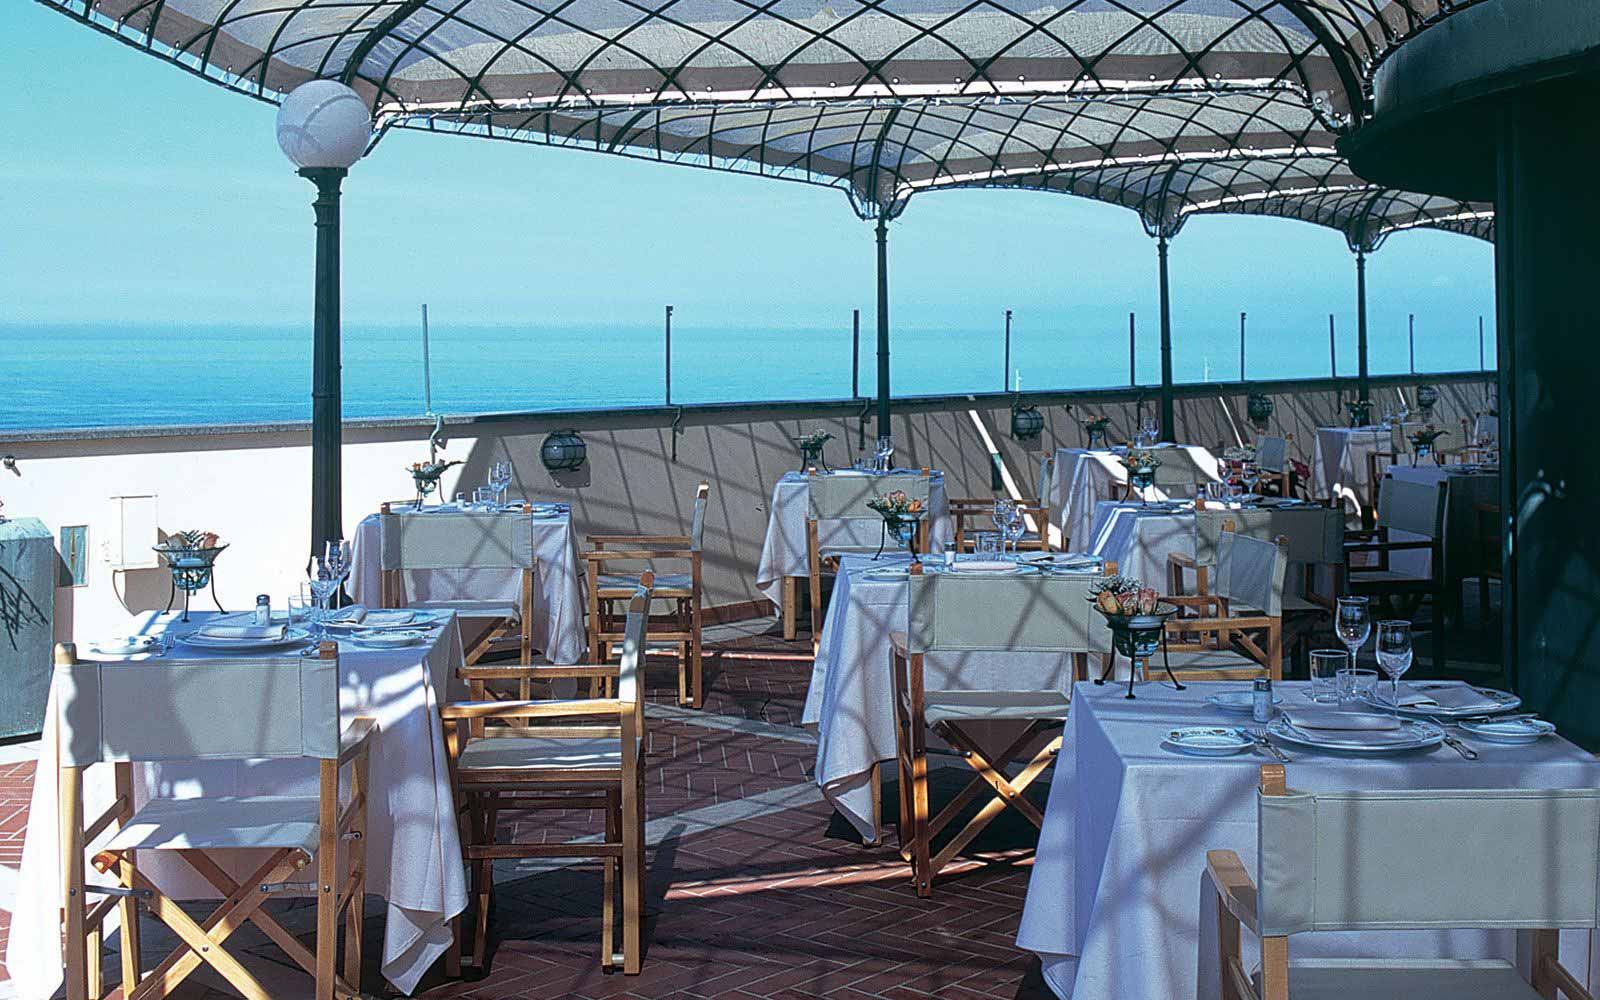 Terrace restaurant at Hotel Plaze e de Russie